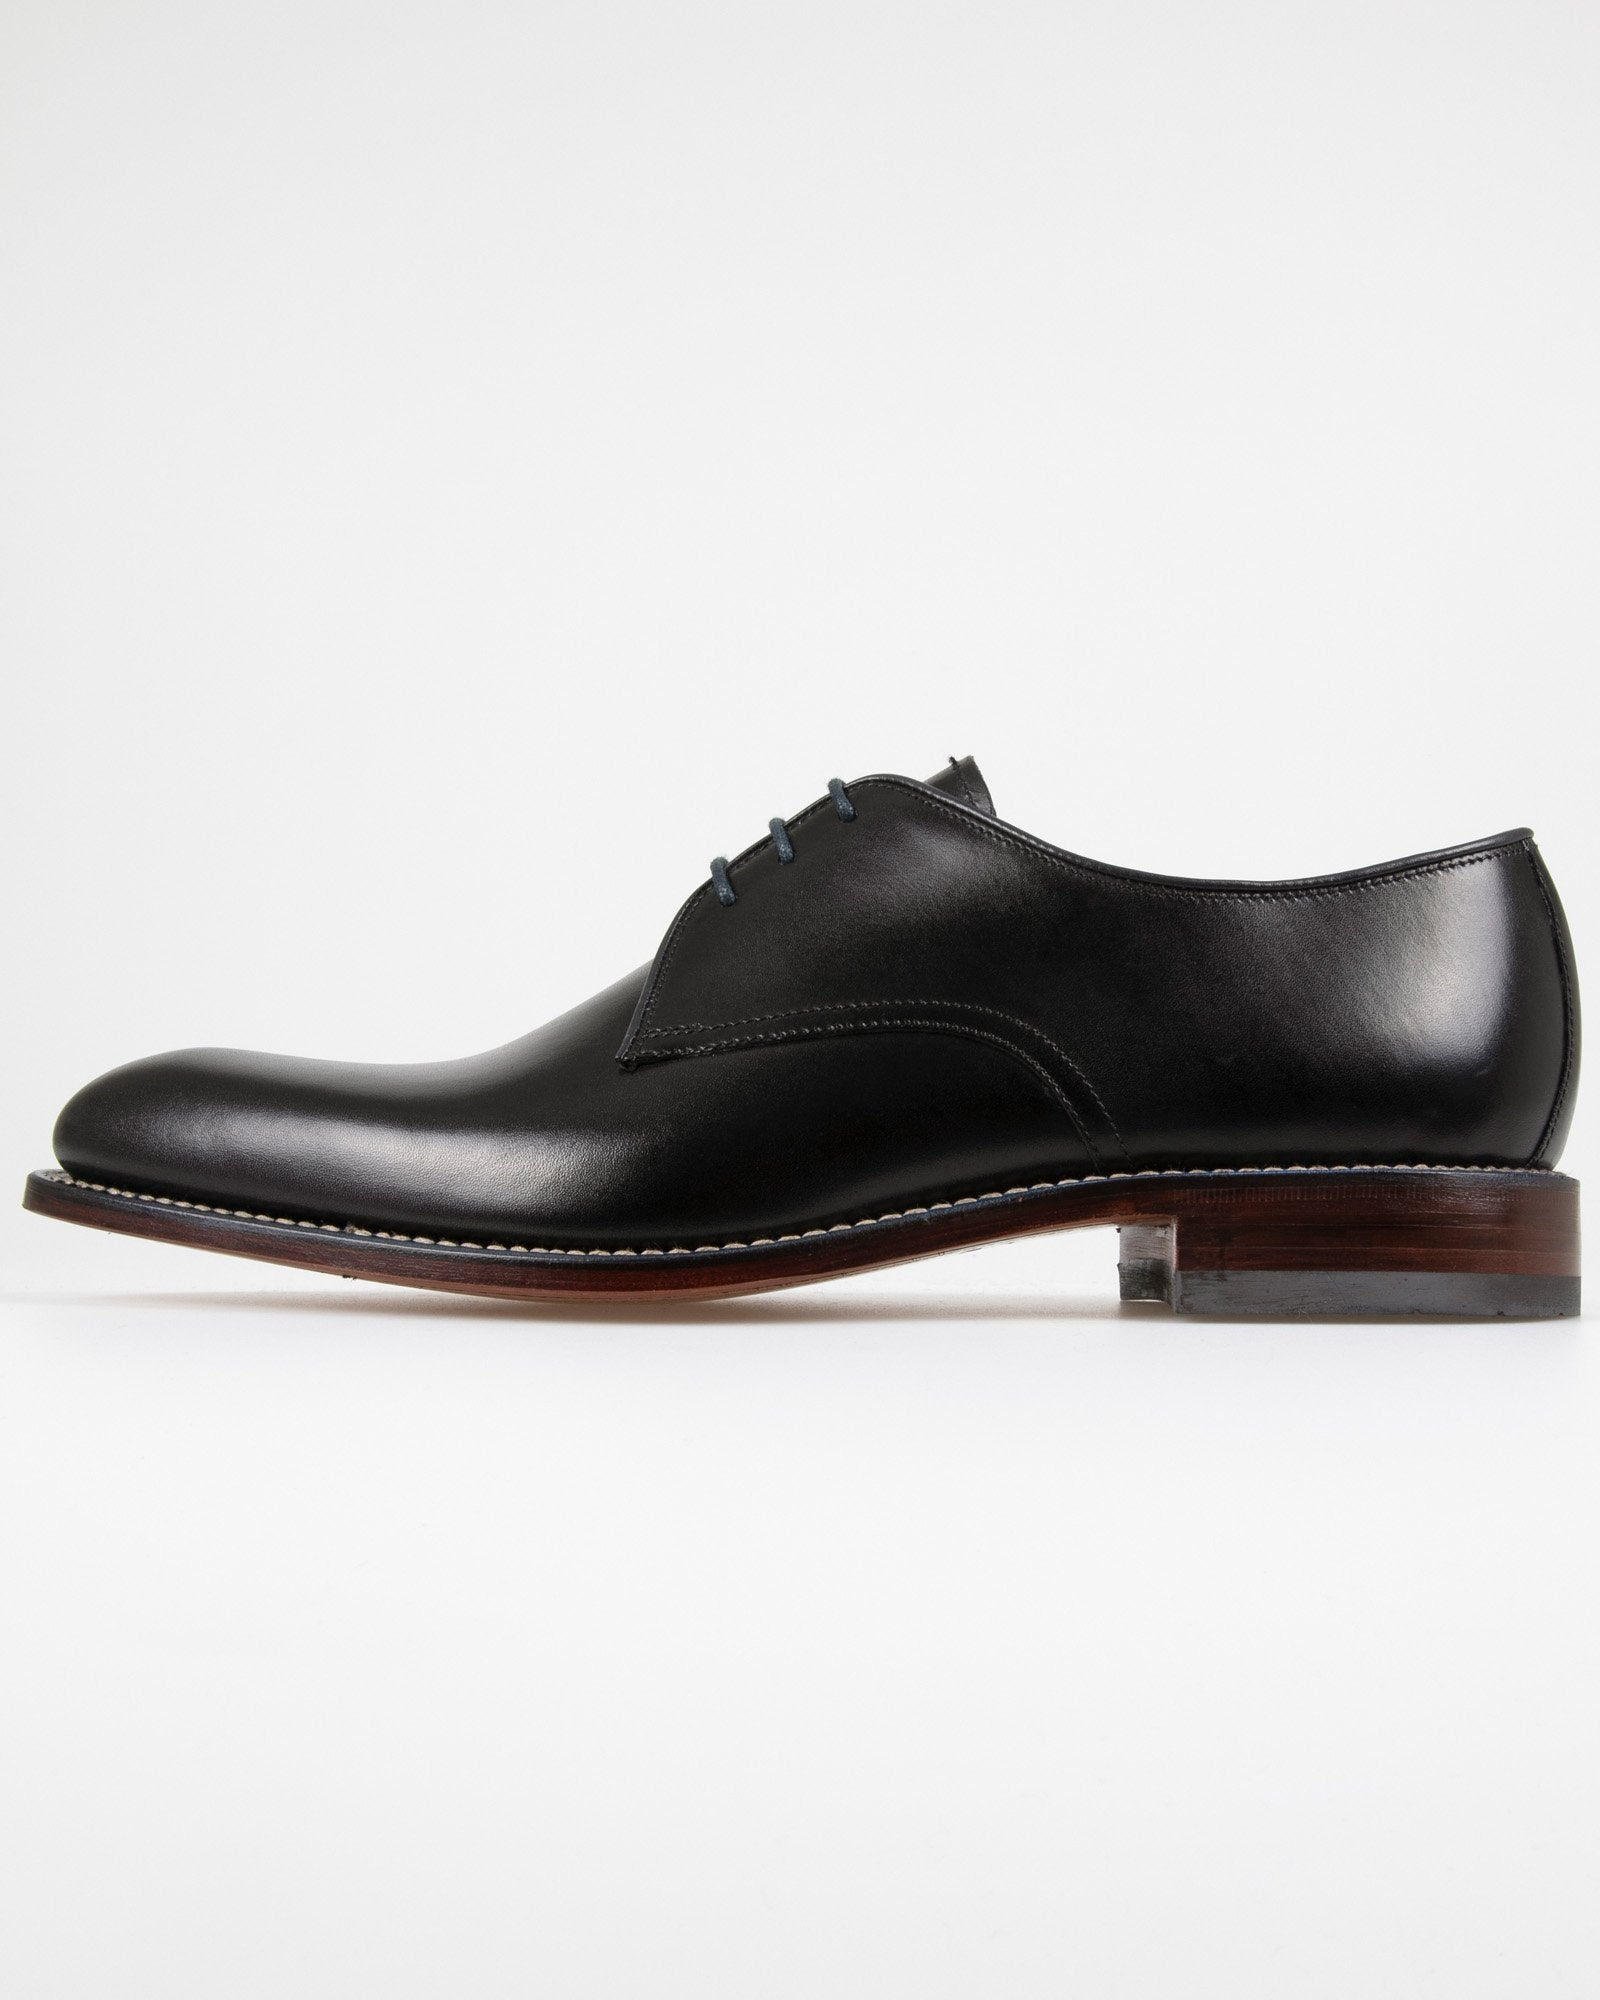 Loake Drake Plain Derby Shoe - Black UK 7 DRAB7 5050362202616 Loake Shoemakers Shoes Loake Drake Plain Derby Shoe - Black - Jeans and Street Fashion from Jeanstore